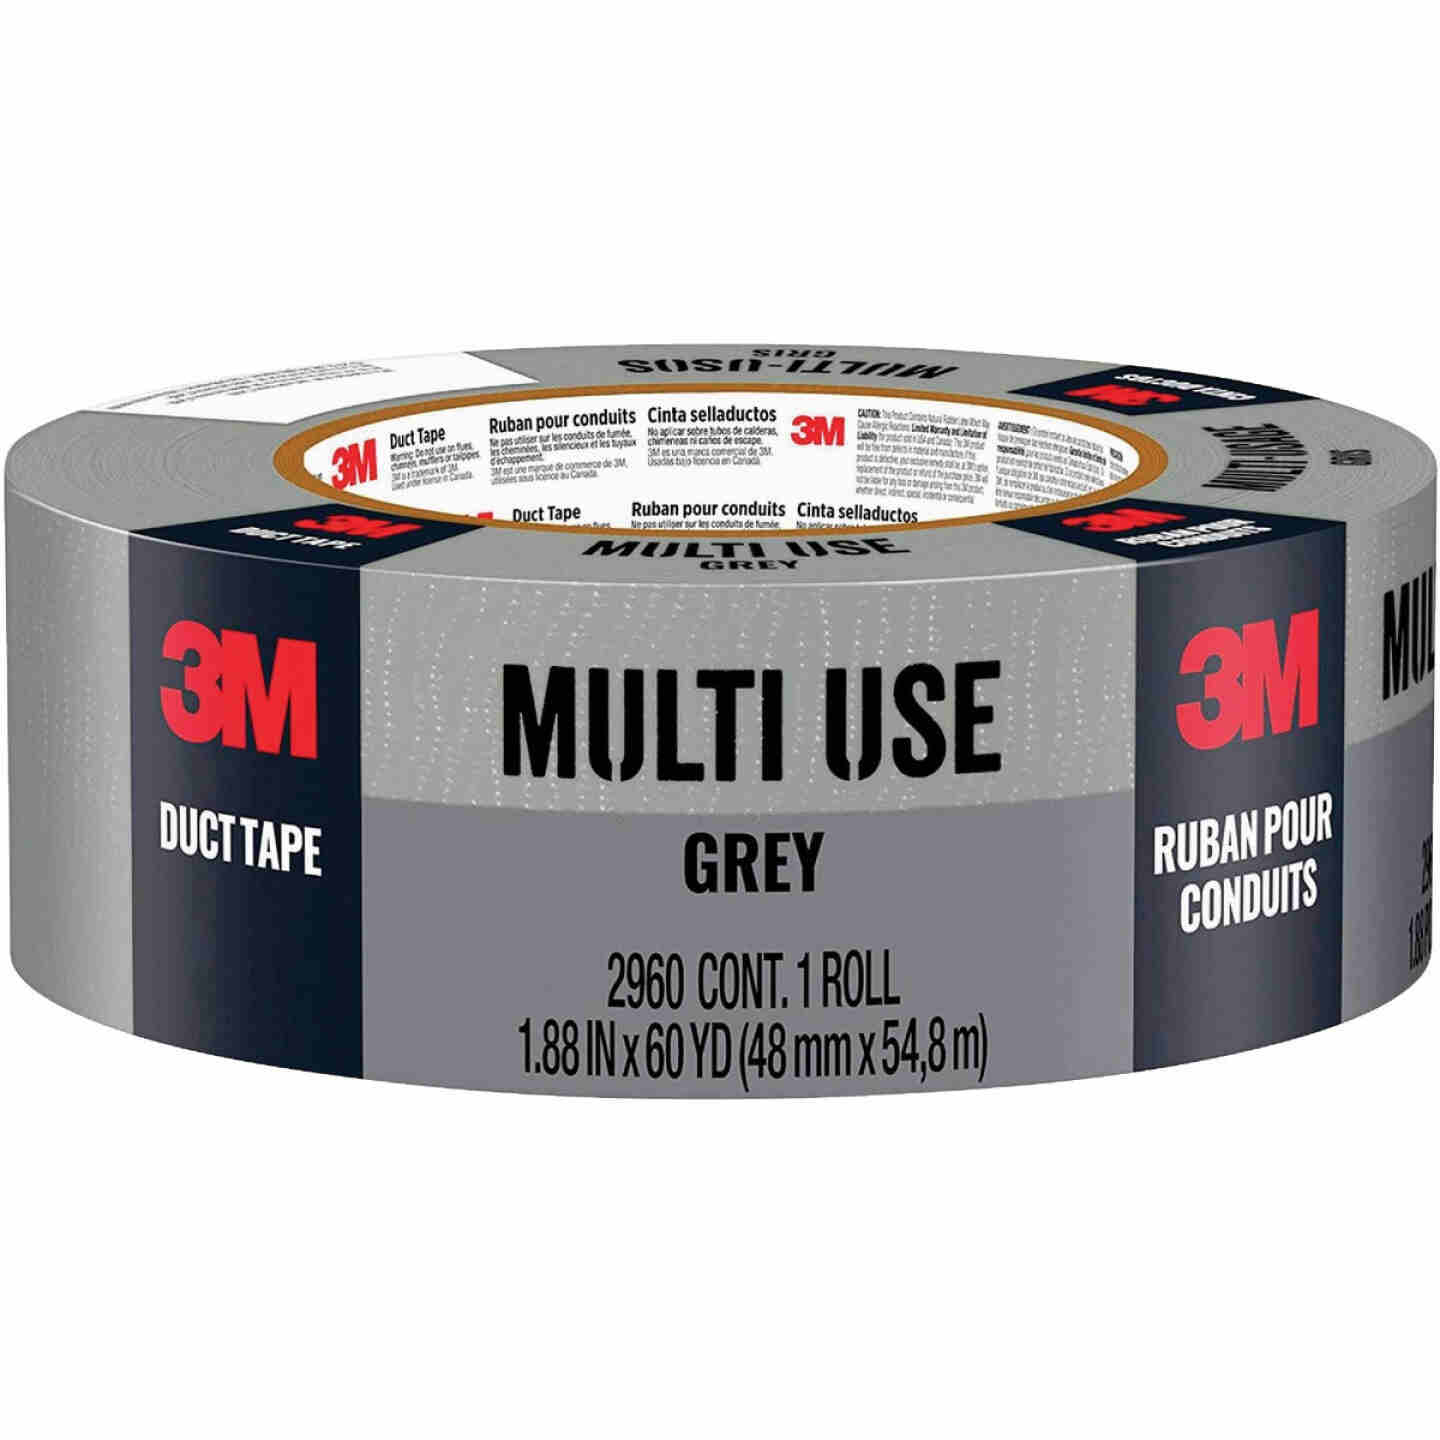 3M 1.88 In. x 60 Yd. Multi-Use Home & Shop Duct Tape, Gray Image 1